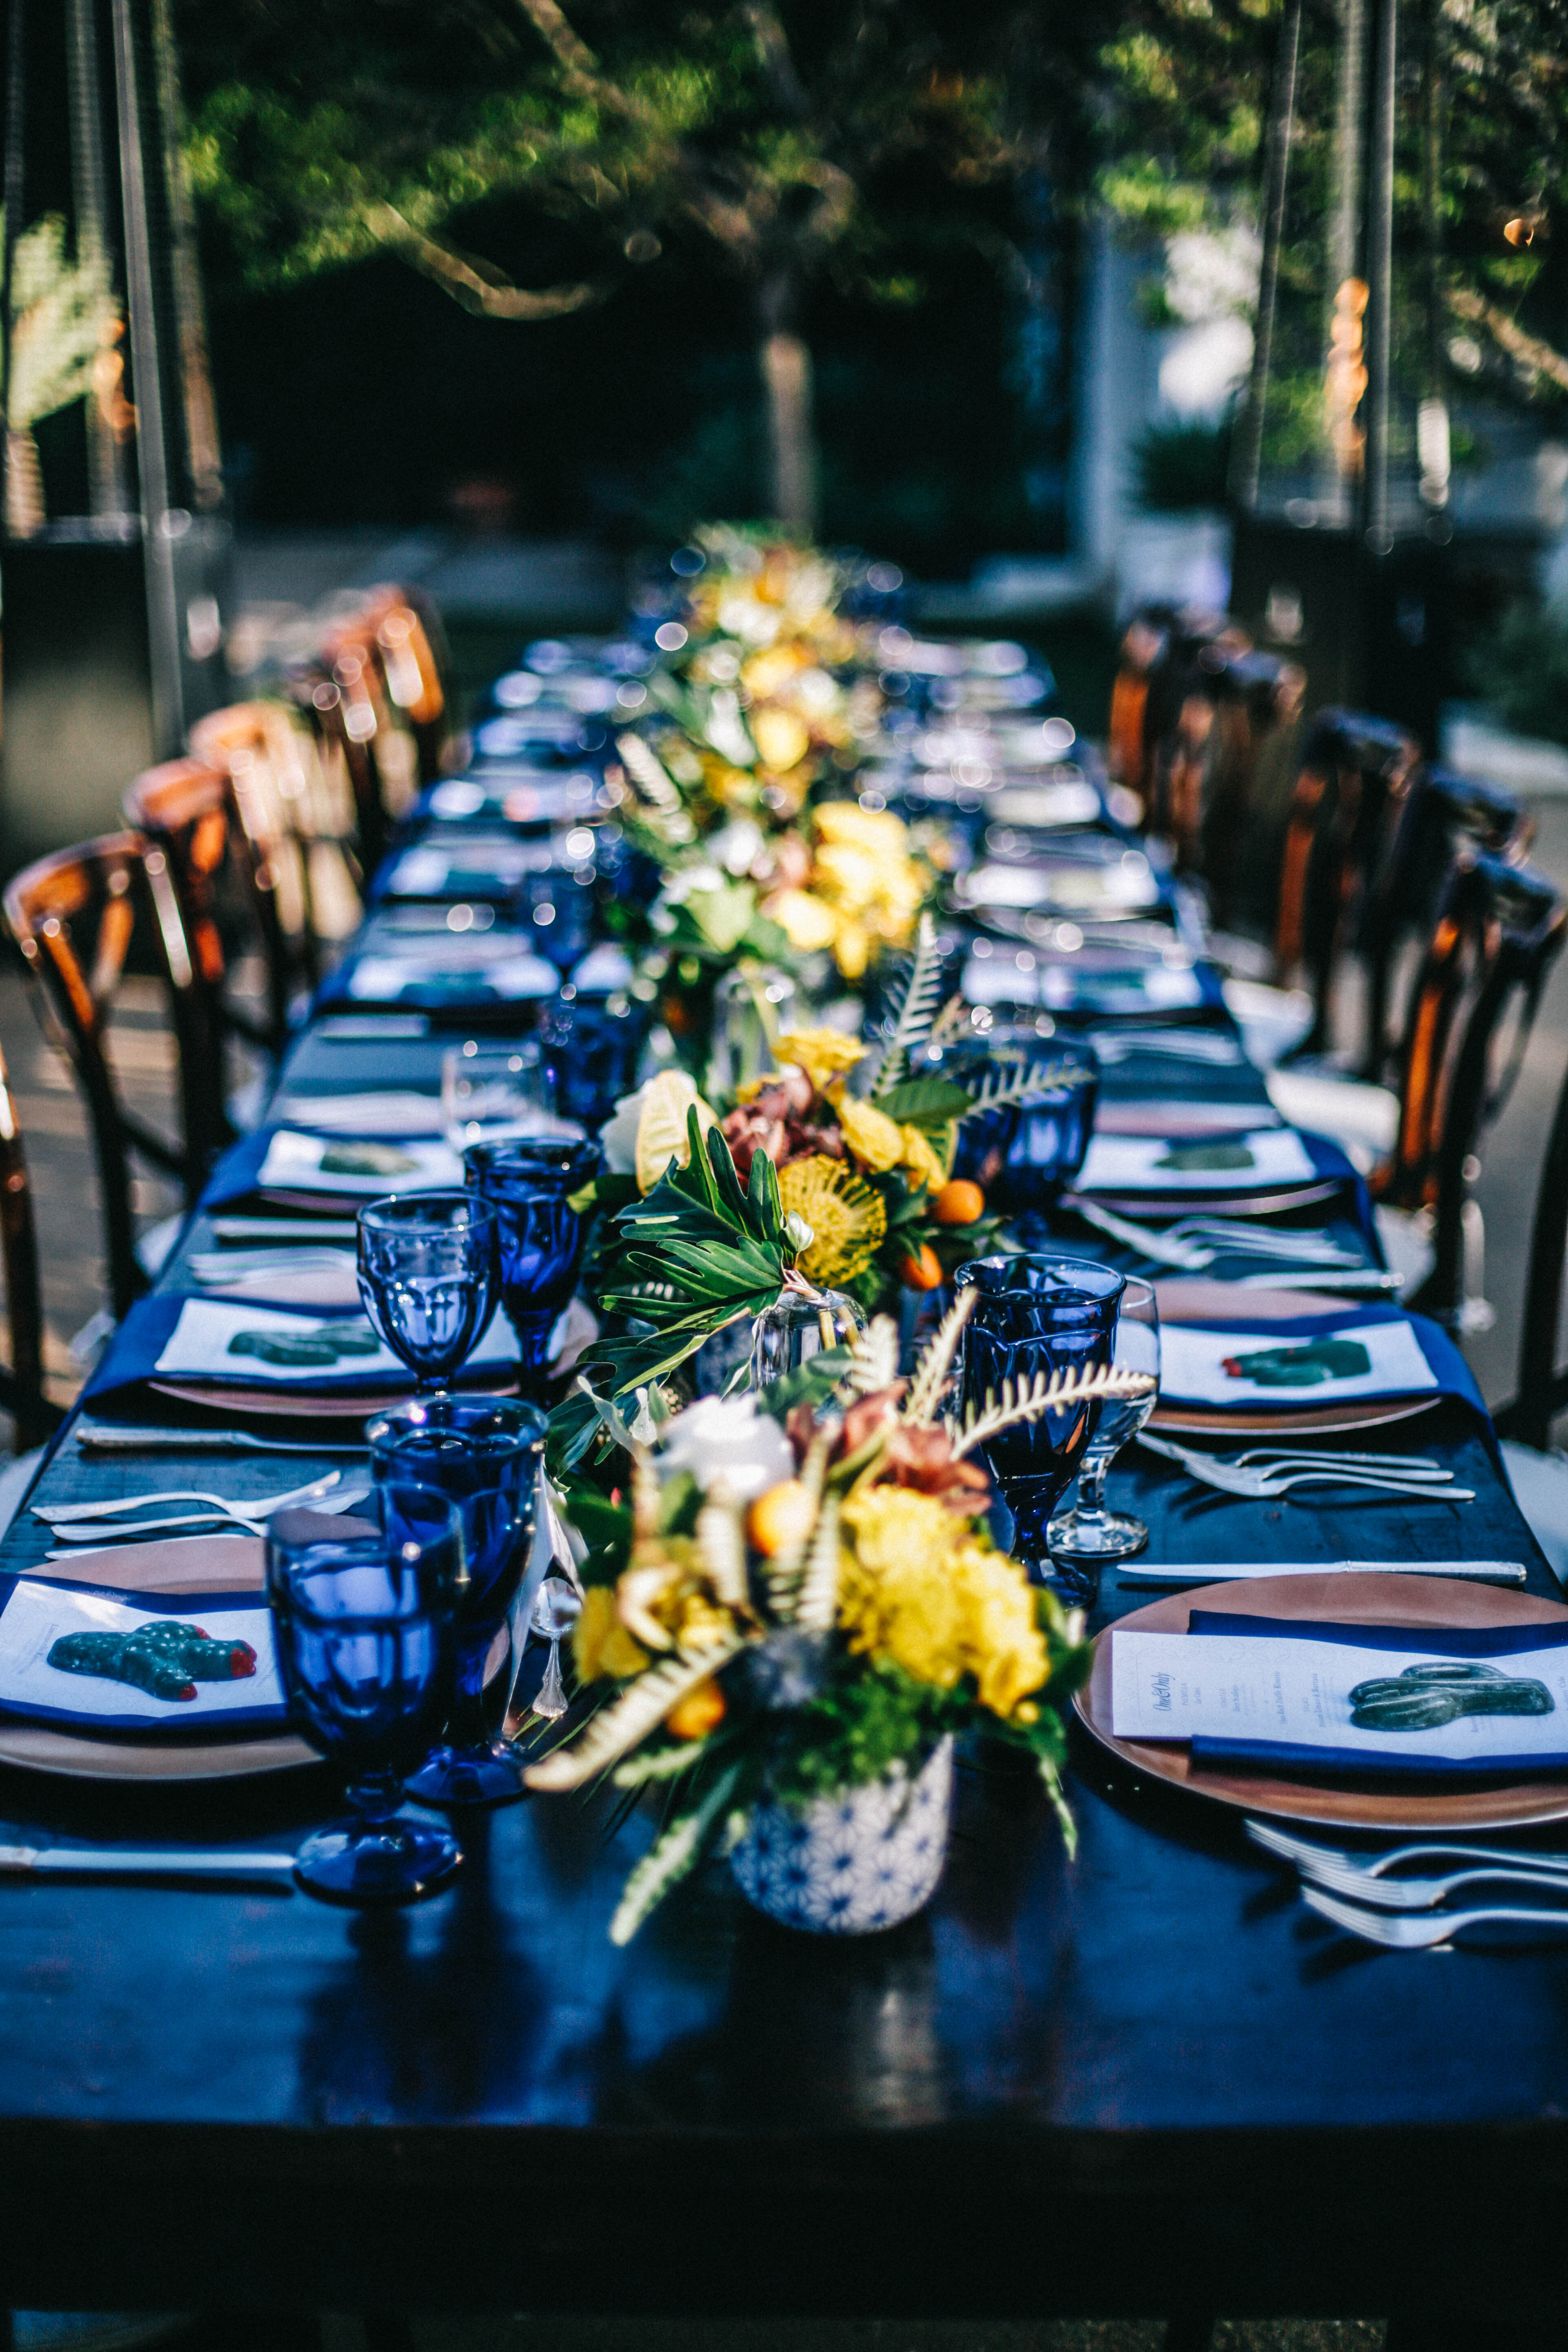 Brentwood Dinner Party - CRATEFUL Catering